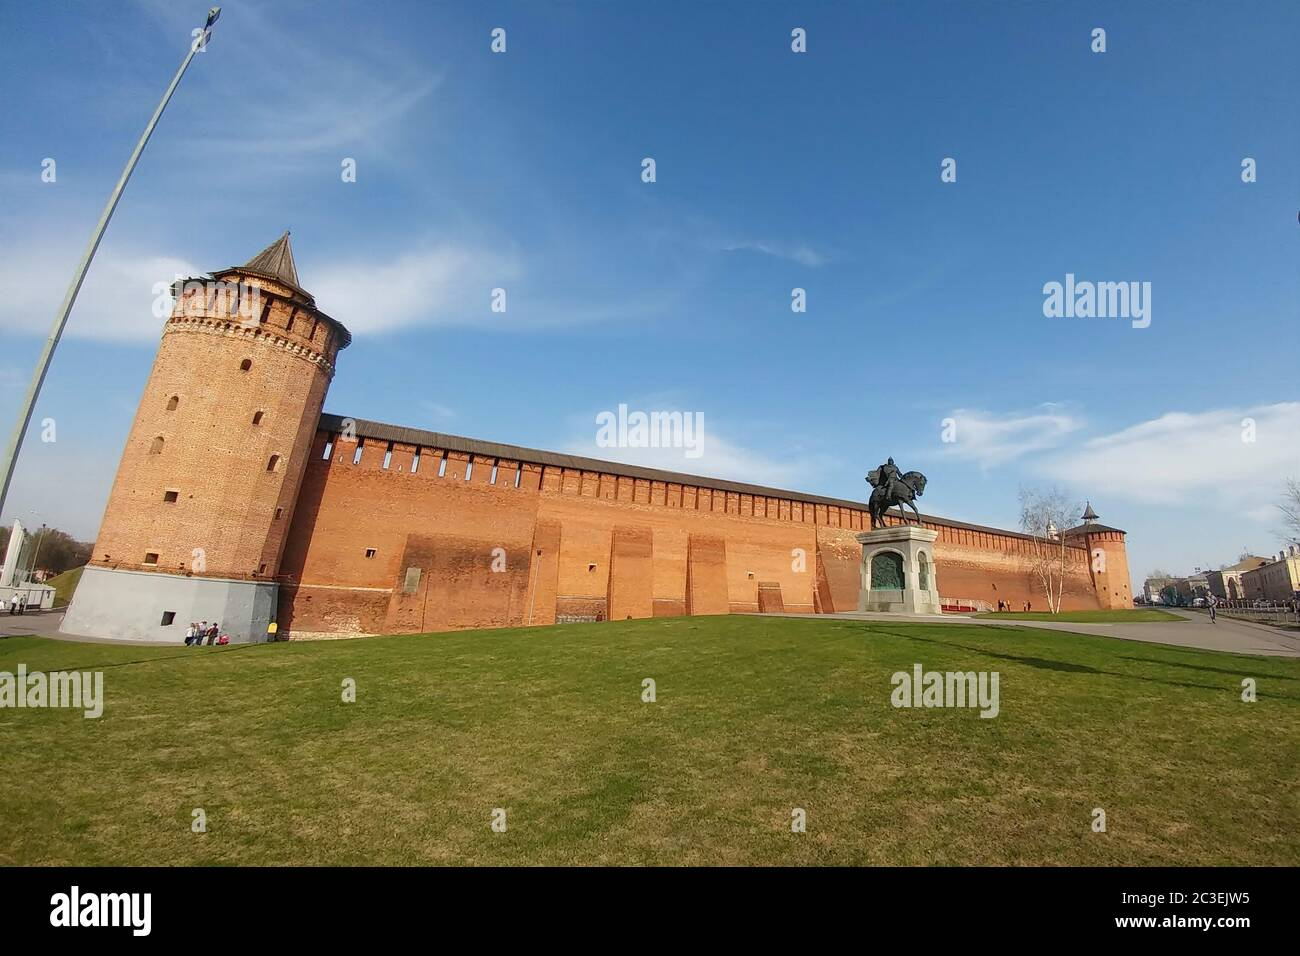 Kolomna, Russia - April 1, 2019: Kolomna kremlin - one of the largest and most powerful ancient fortresses Stock Photo